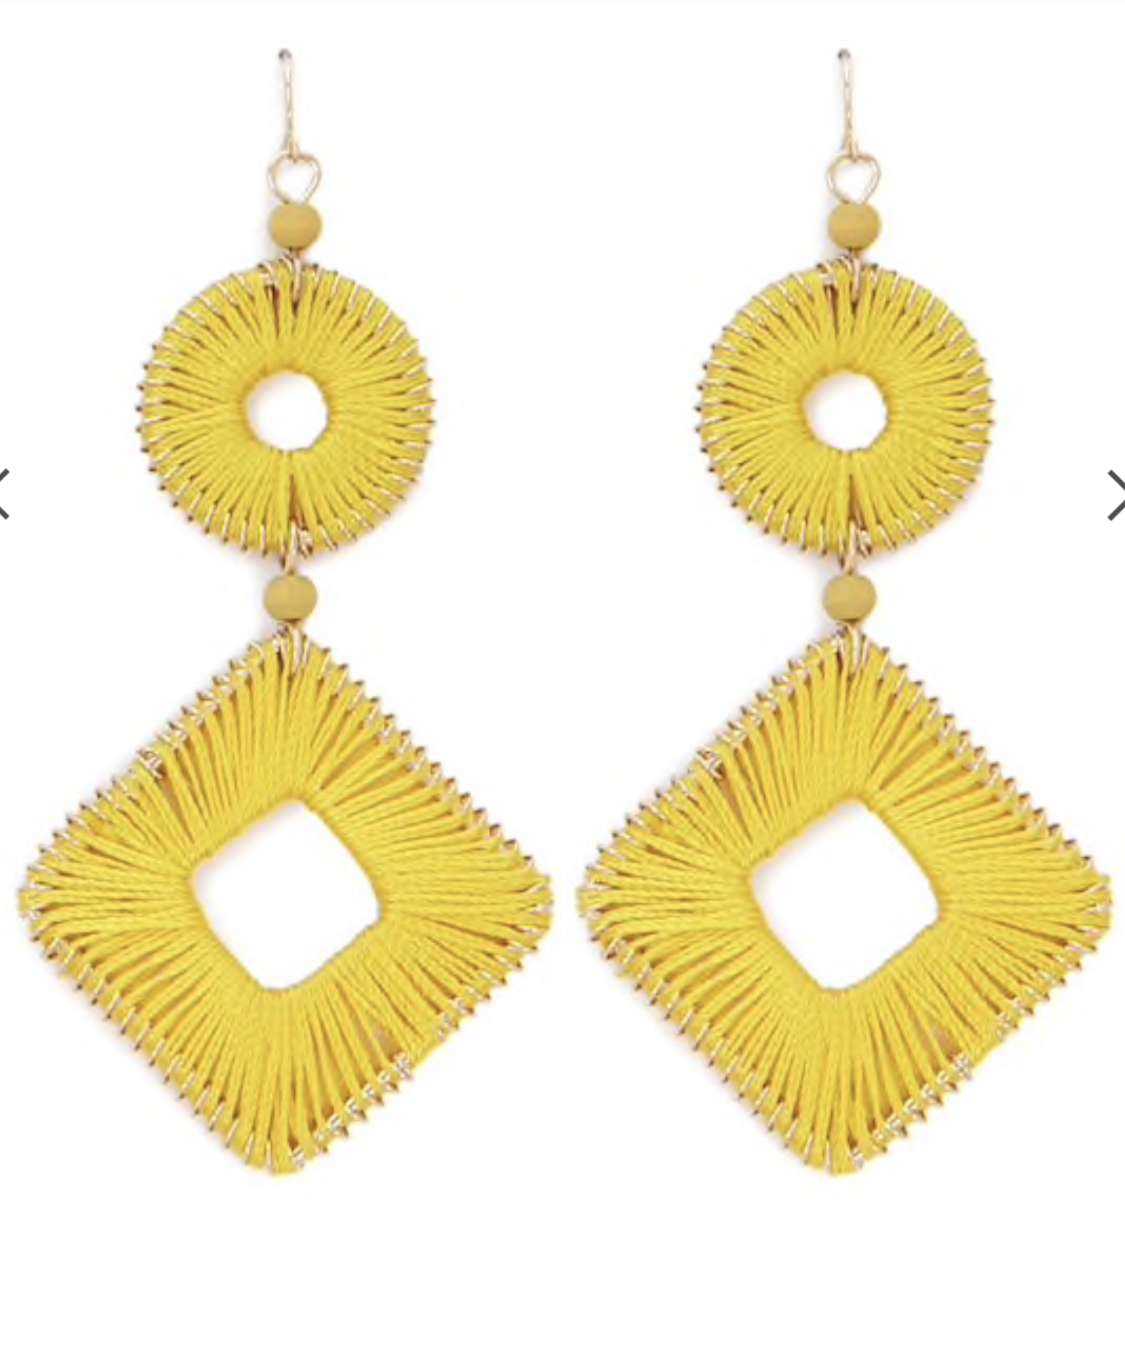 Threaded Geo Drop Earrings